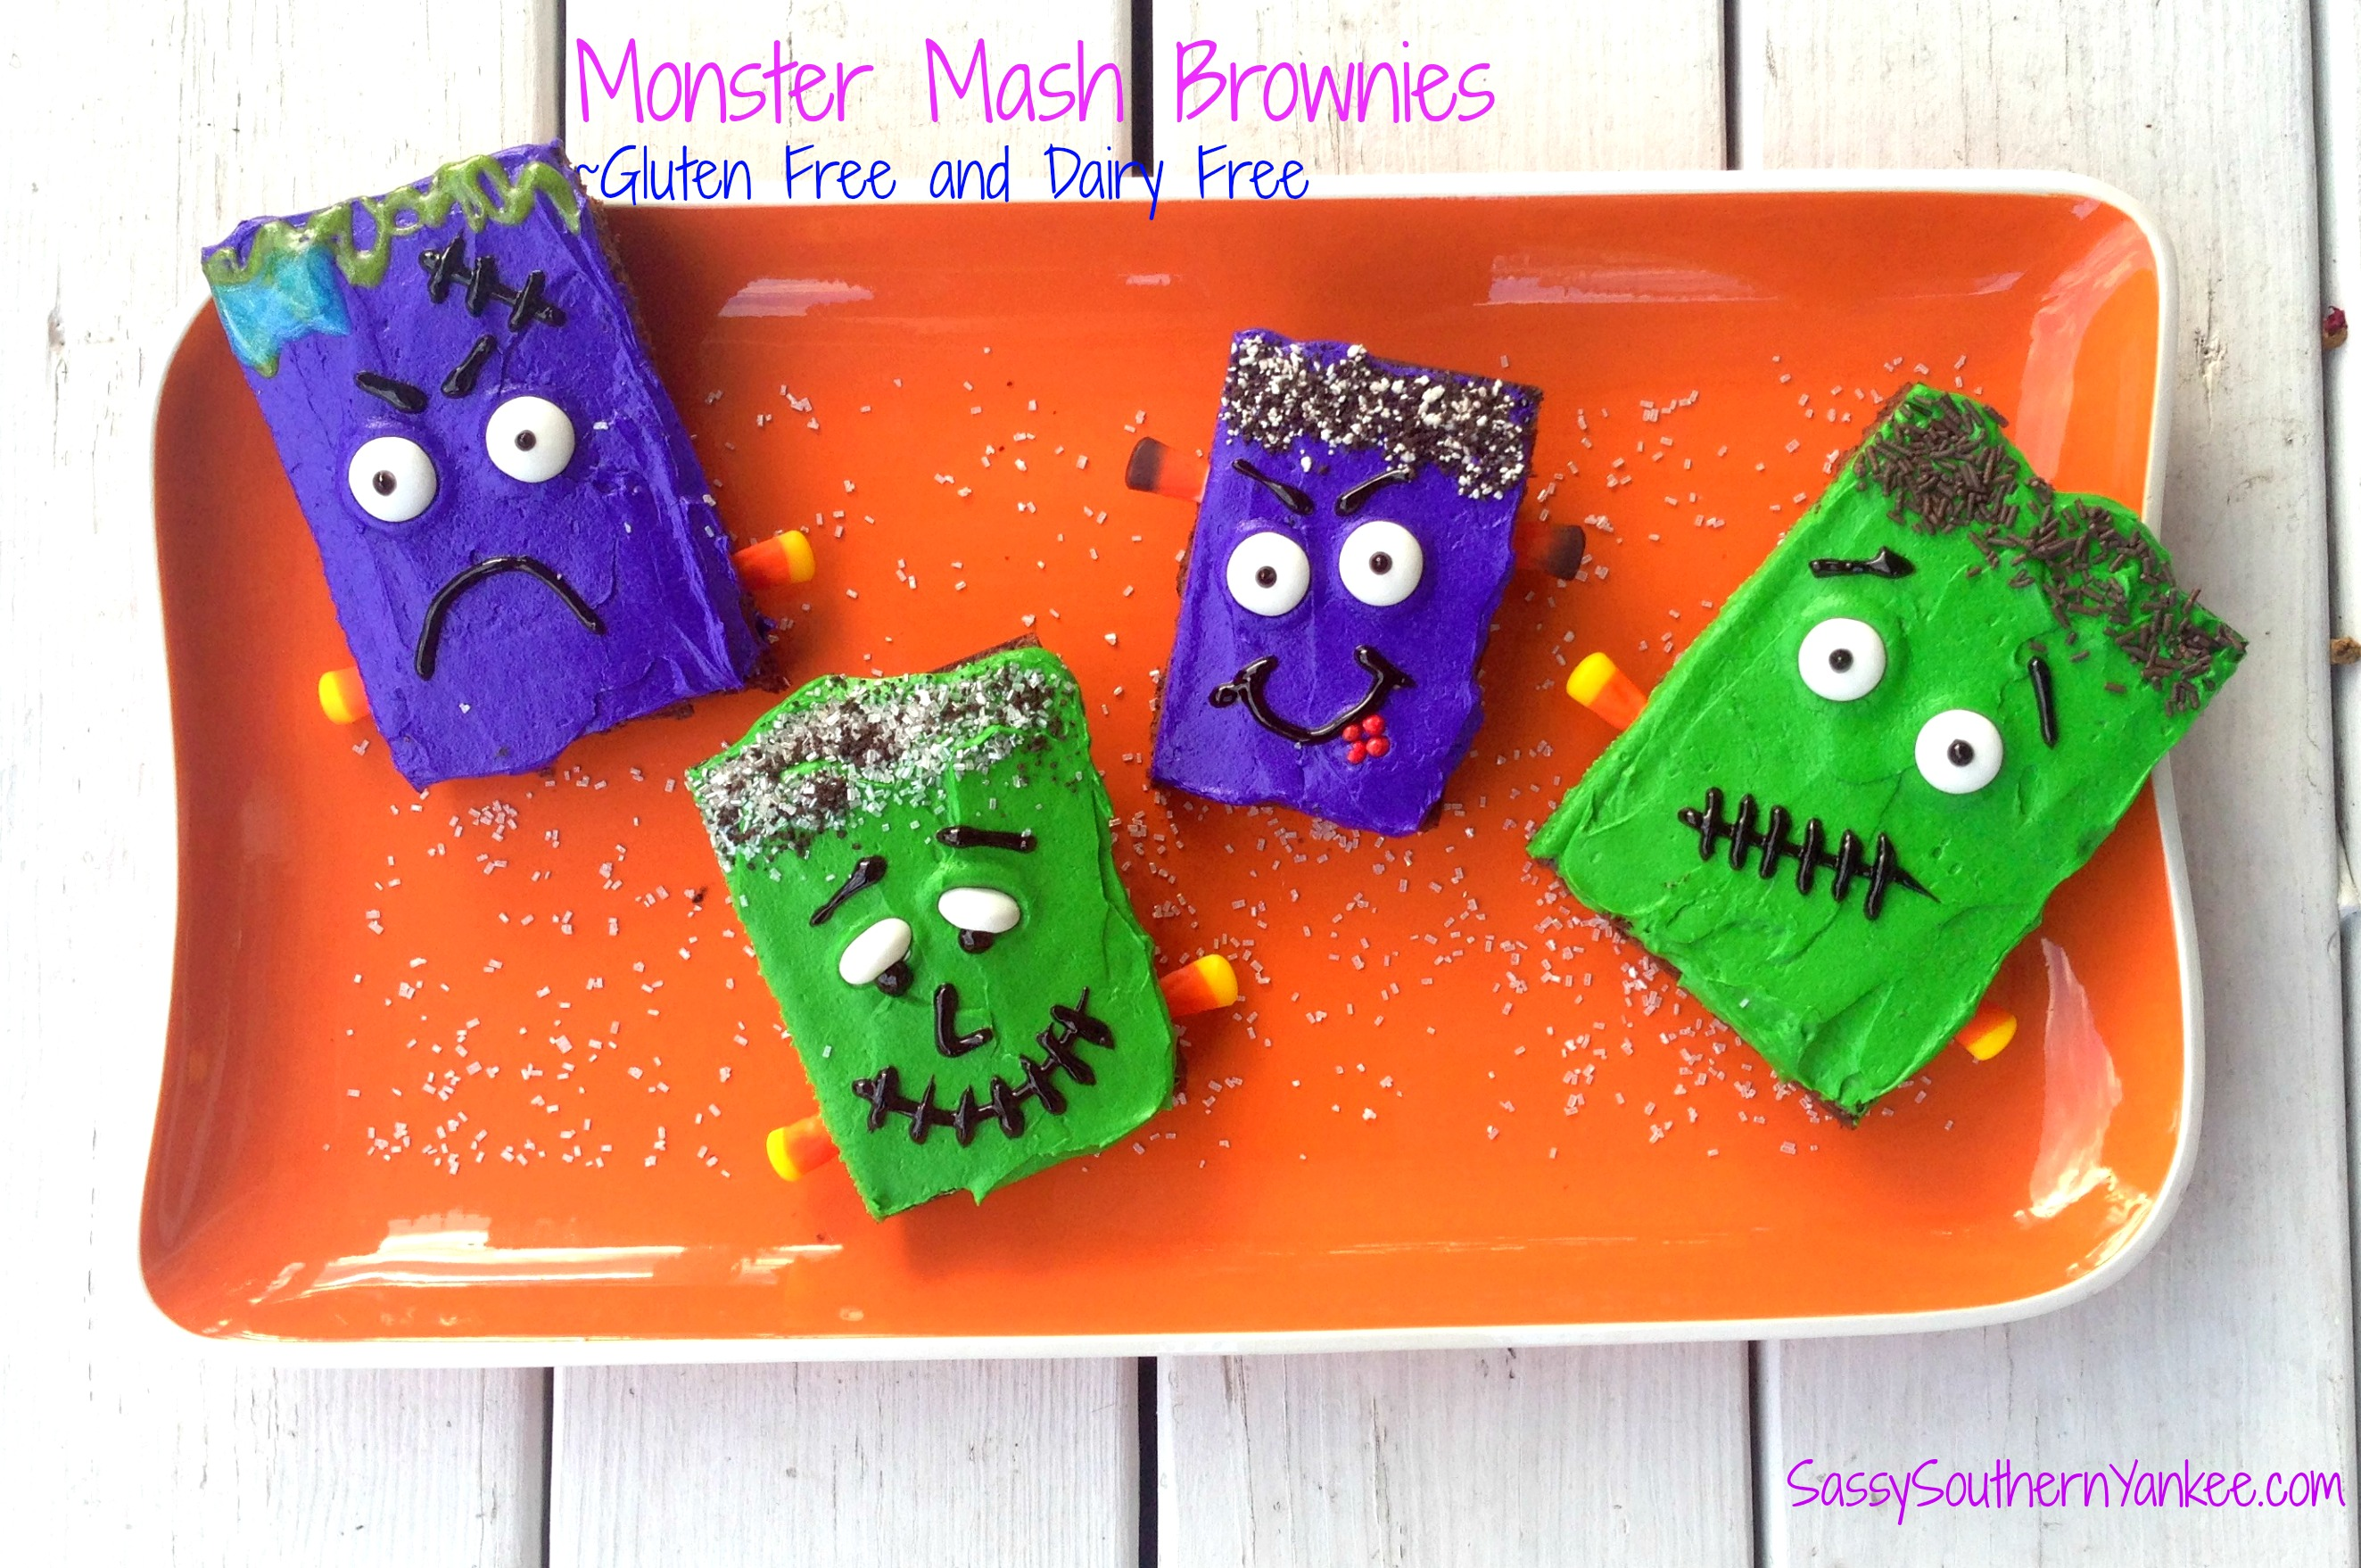 Monster Mash Brownie's from Sassy Southern Yankee